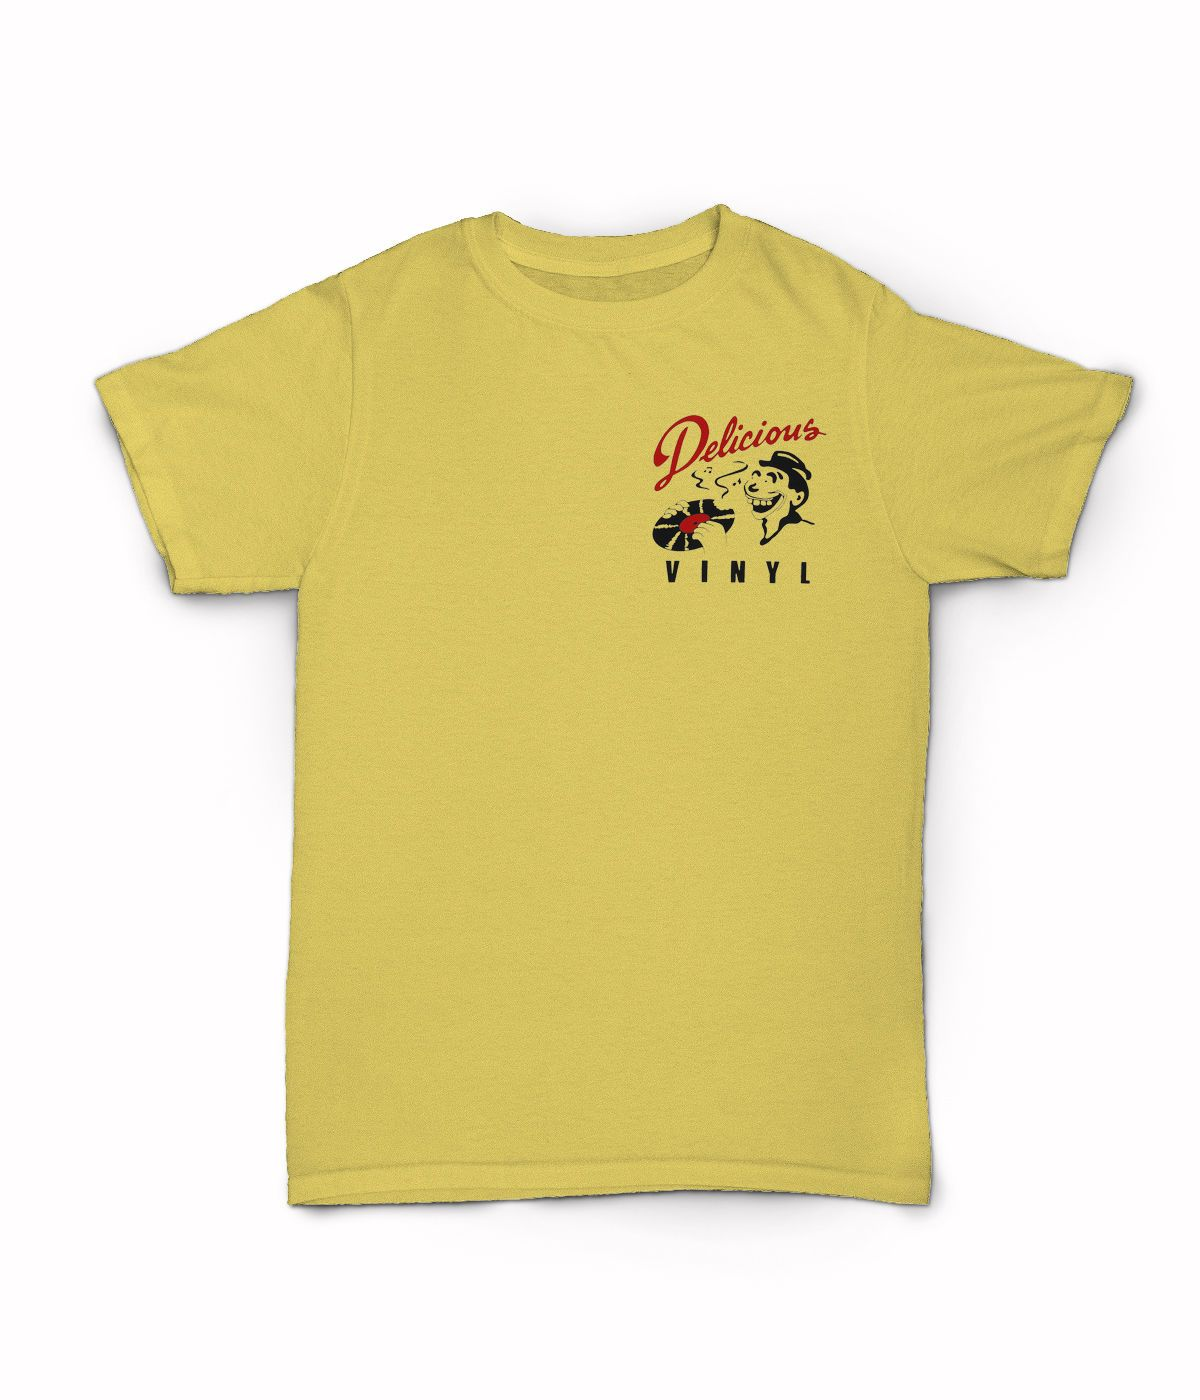 Delicious Vinyl Logo T Shirt Record Label The Pharcyde Independent Hip Hop Record Label Tshirt Logo The Pharcyde